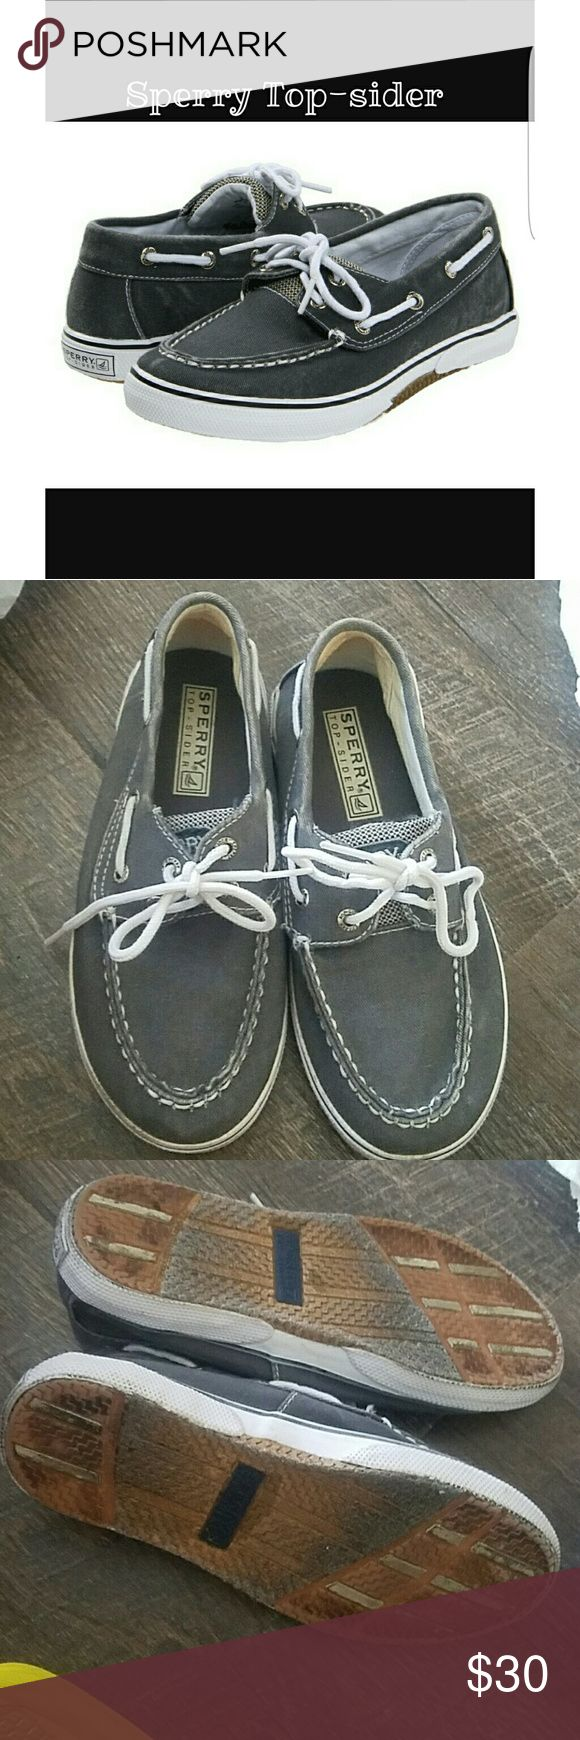 Toddler Sperry Top-sider size 1 Toddler Sperry Top-sider size 1 in good used condition.  Open to offers :) Sperry Top-Sider Shoes Sneakers